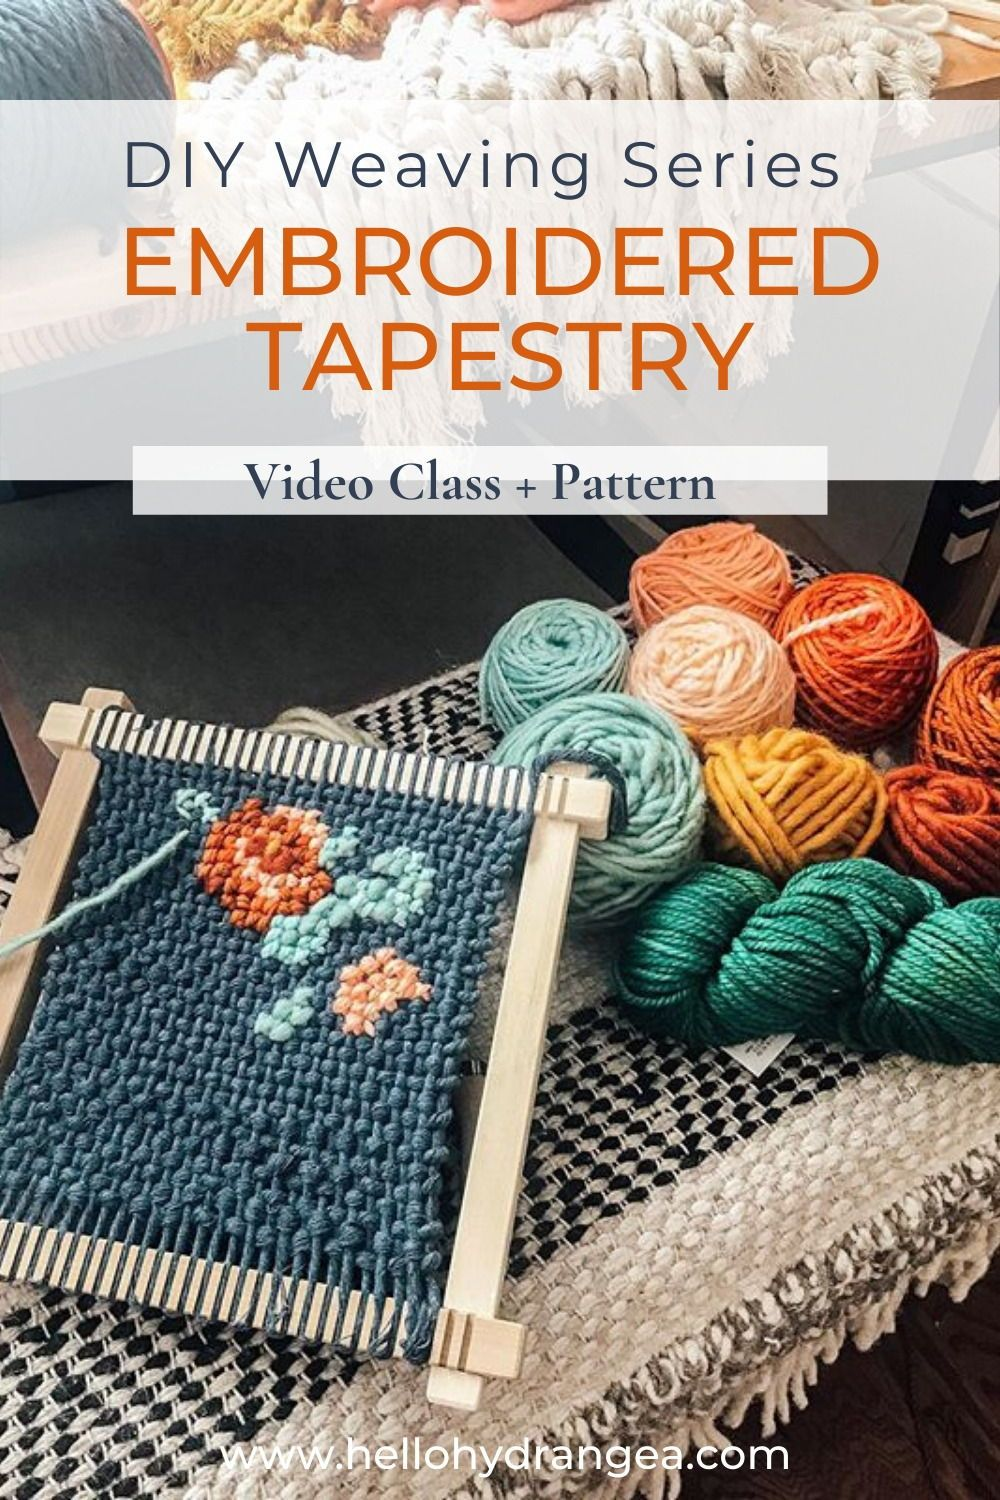 Embroidered woven tapestries is one of my most-requested weaving tutorials. In this weaving video class we are diving deep into how to create a lovely, chunky embroidered tapestry. The class includes three different patterns to try and instructions to make your own so that you can go as big or small as you want! As always, the class comes as a pdf ebook with links to videos and a supply list. #hellohydrangea #weavingdiy #fibercrafts #weavingart